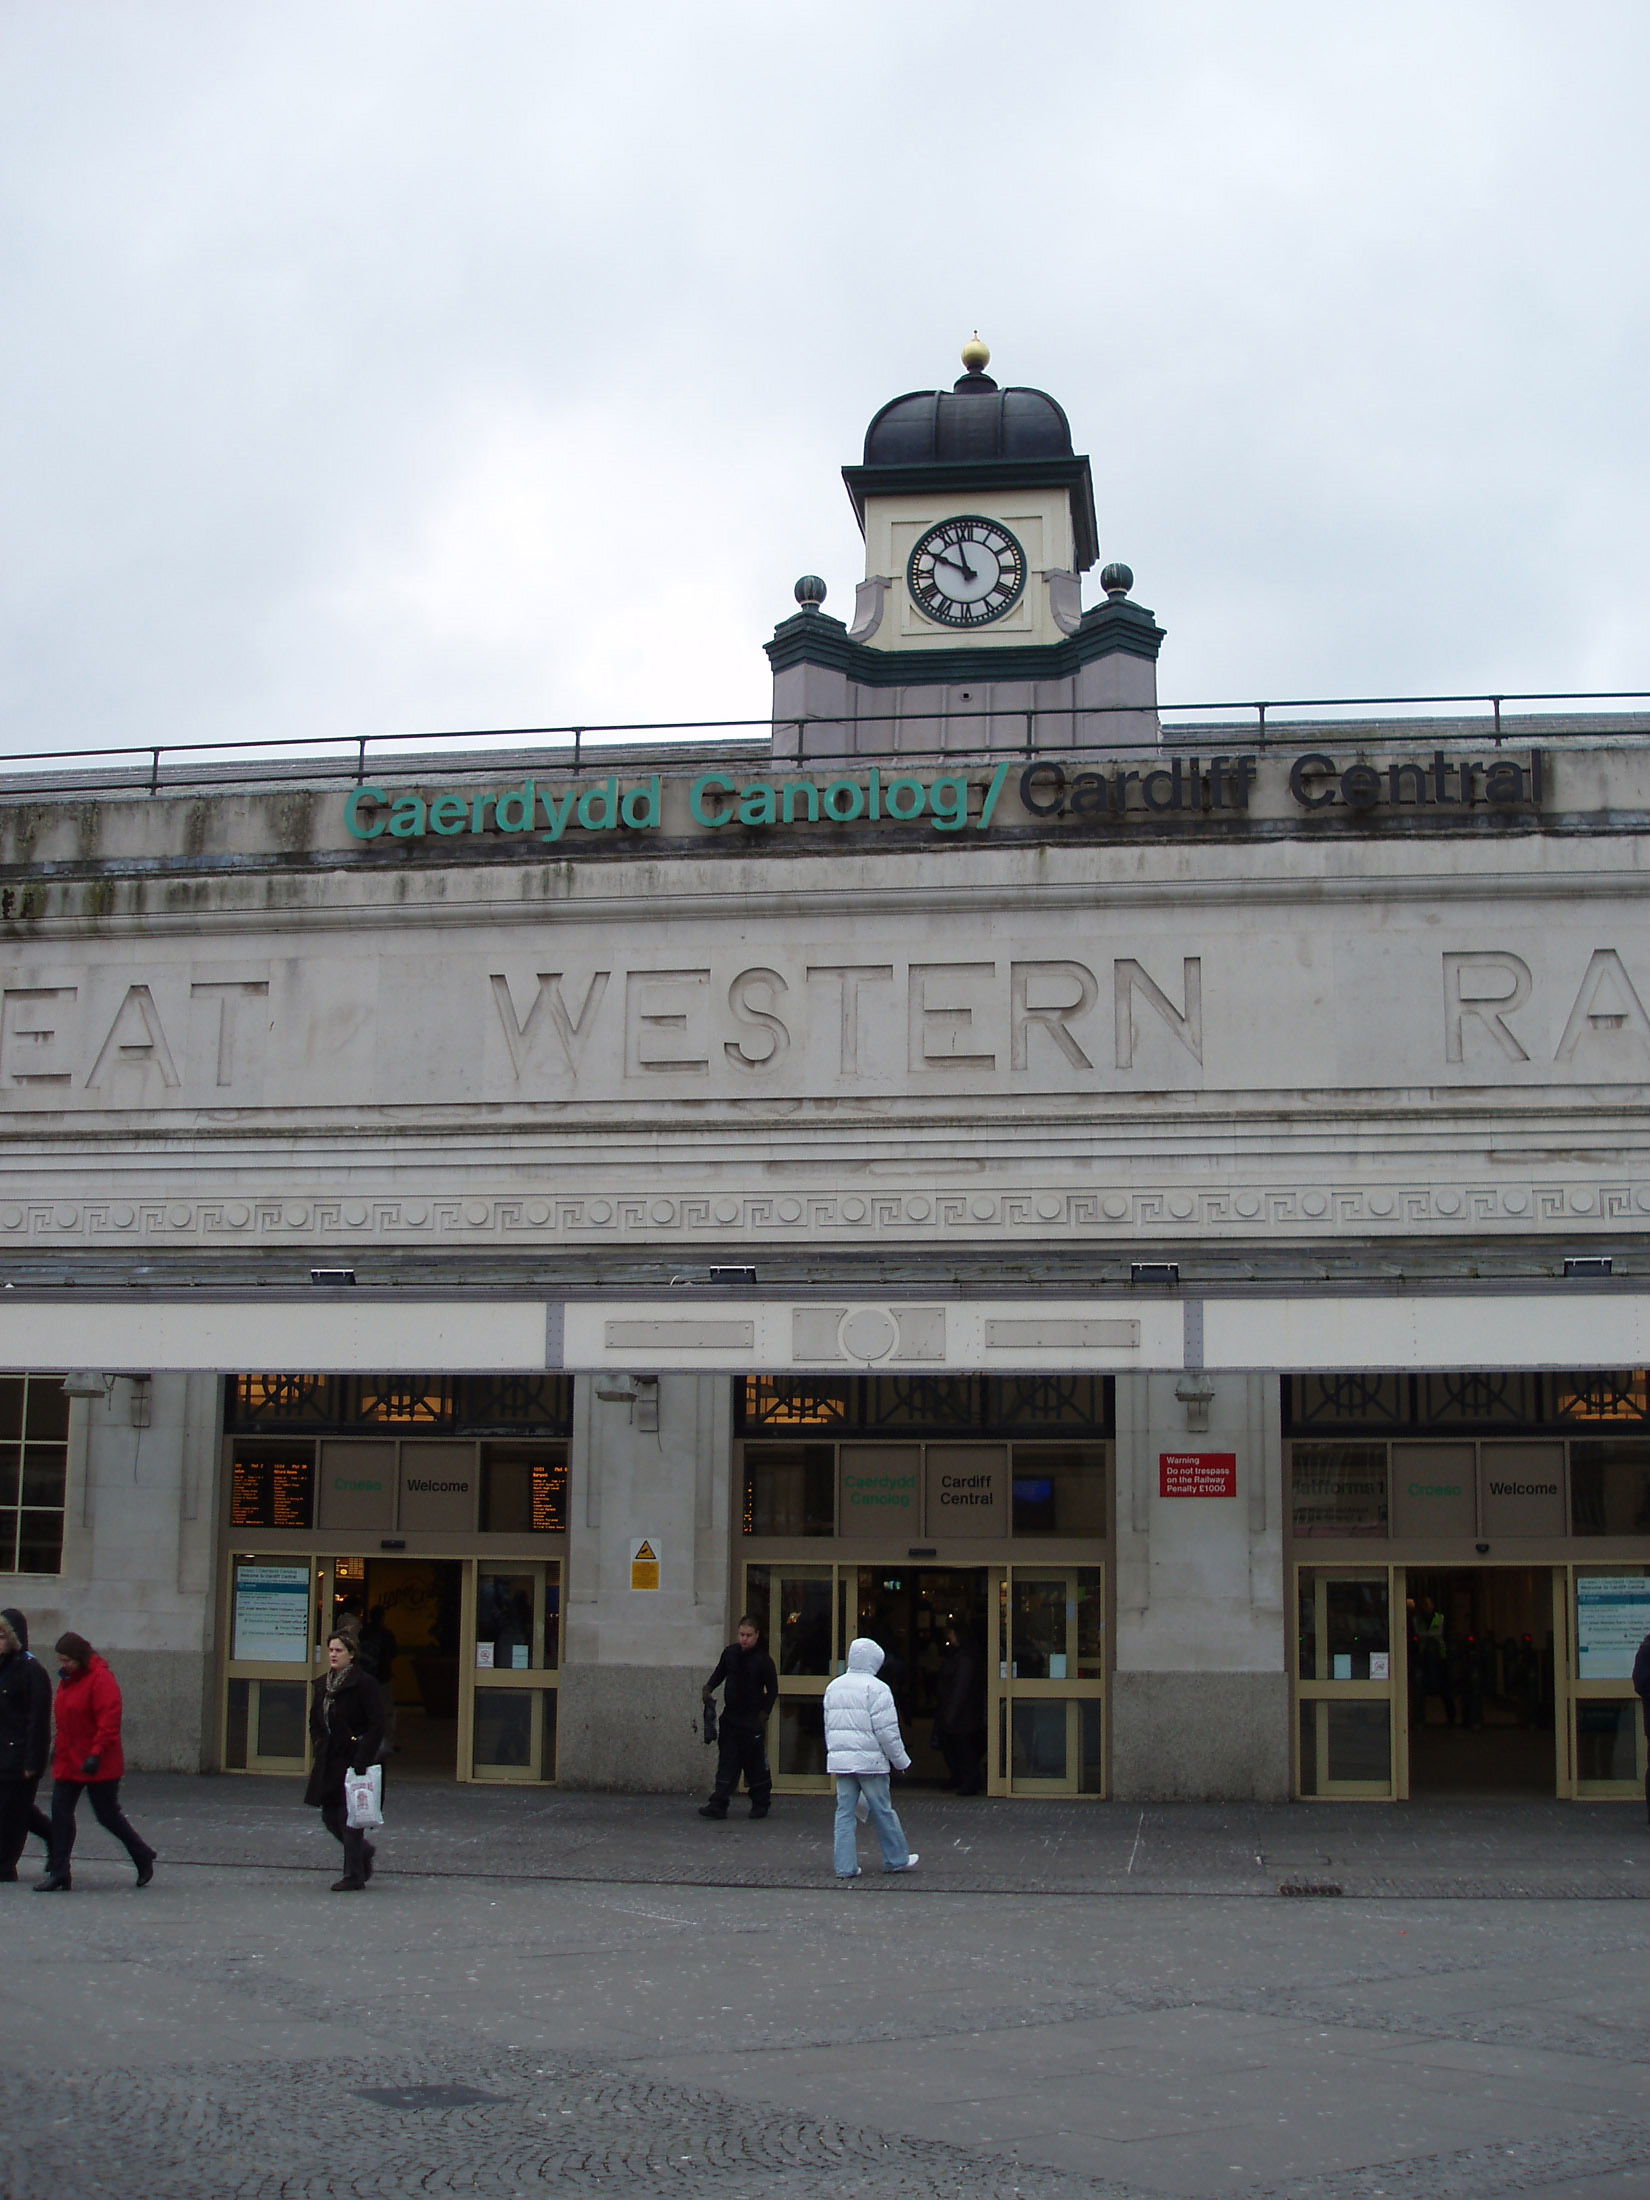 Cardiff Central Station with the clock tower above and Great Western Railway on the building facade, people entering the doors